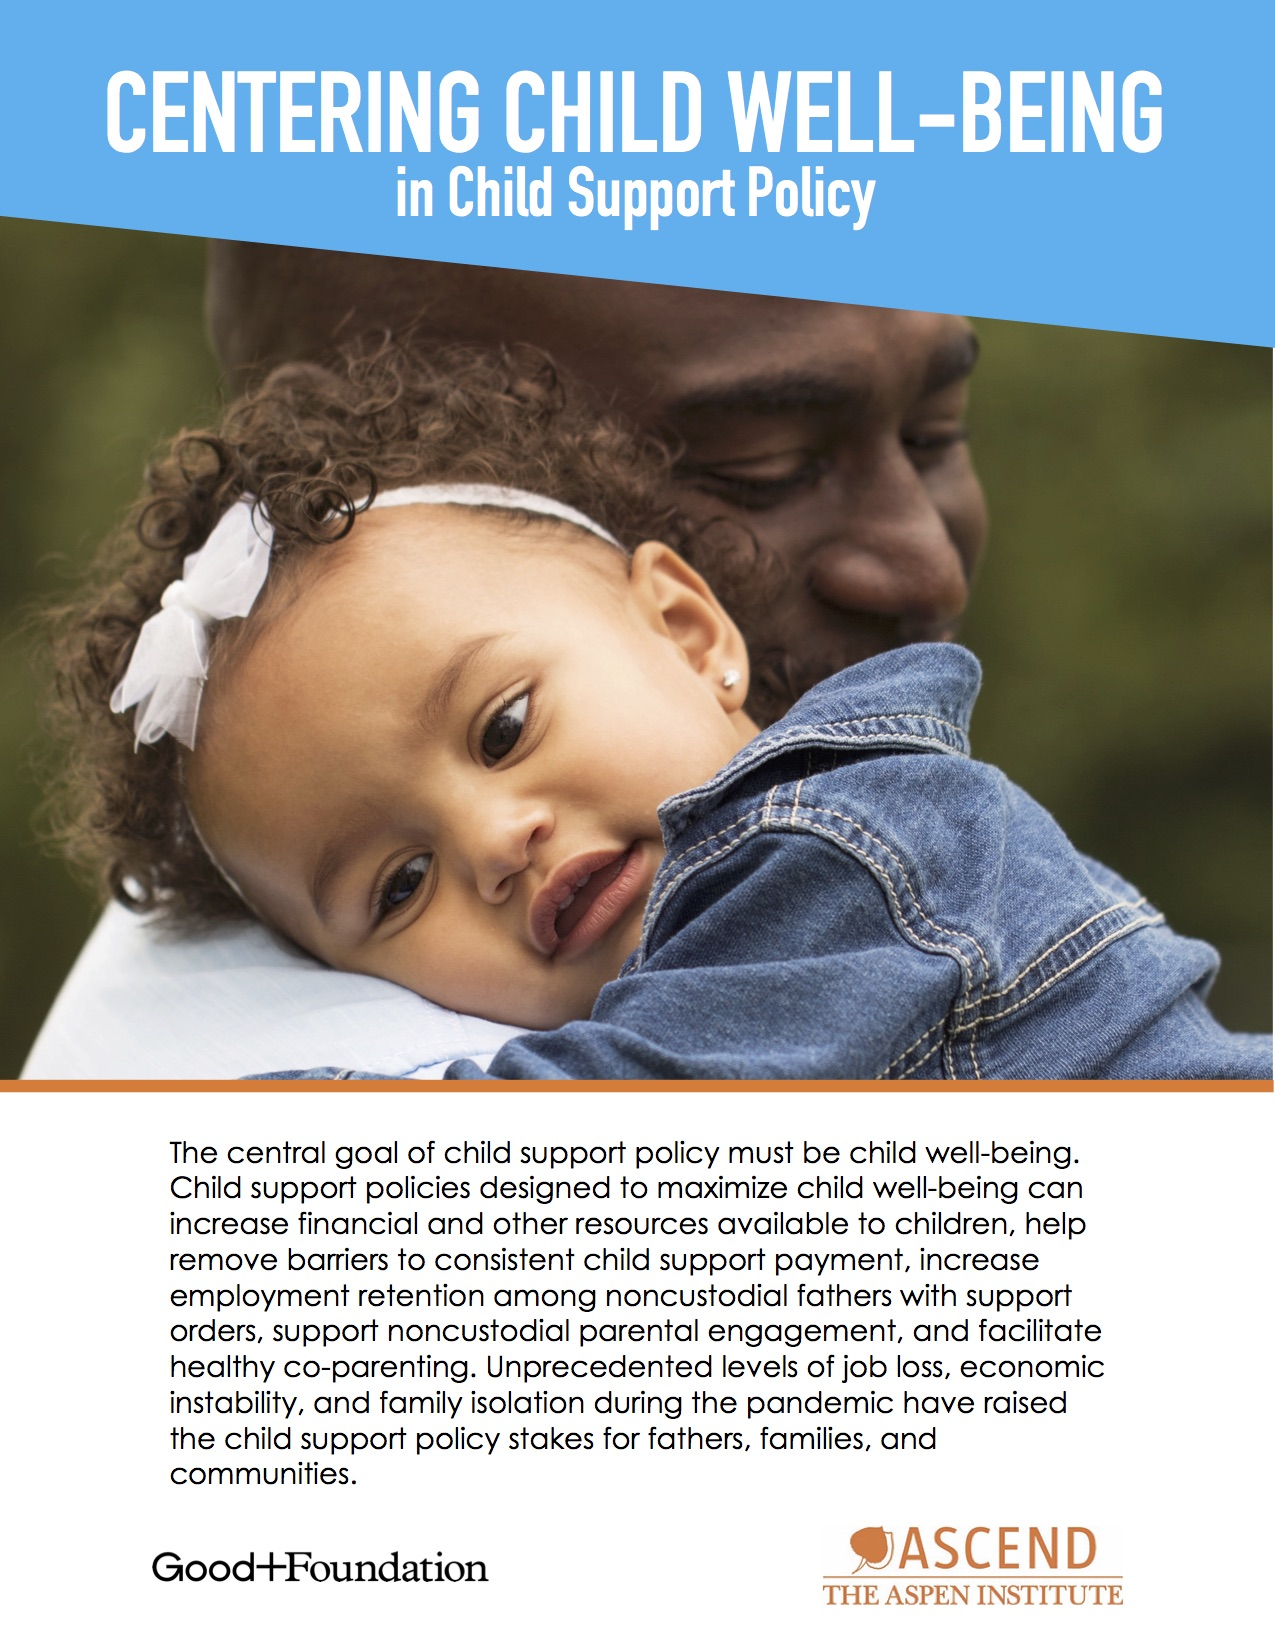 An Evidence-Based Approach to Child Support